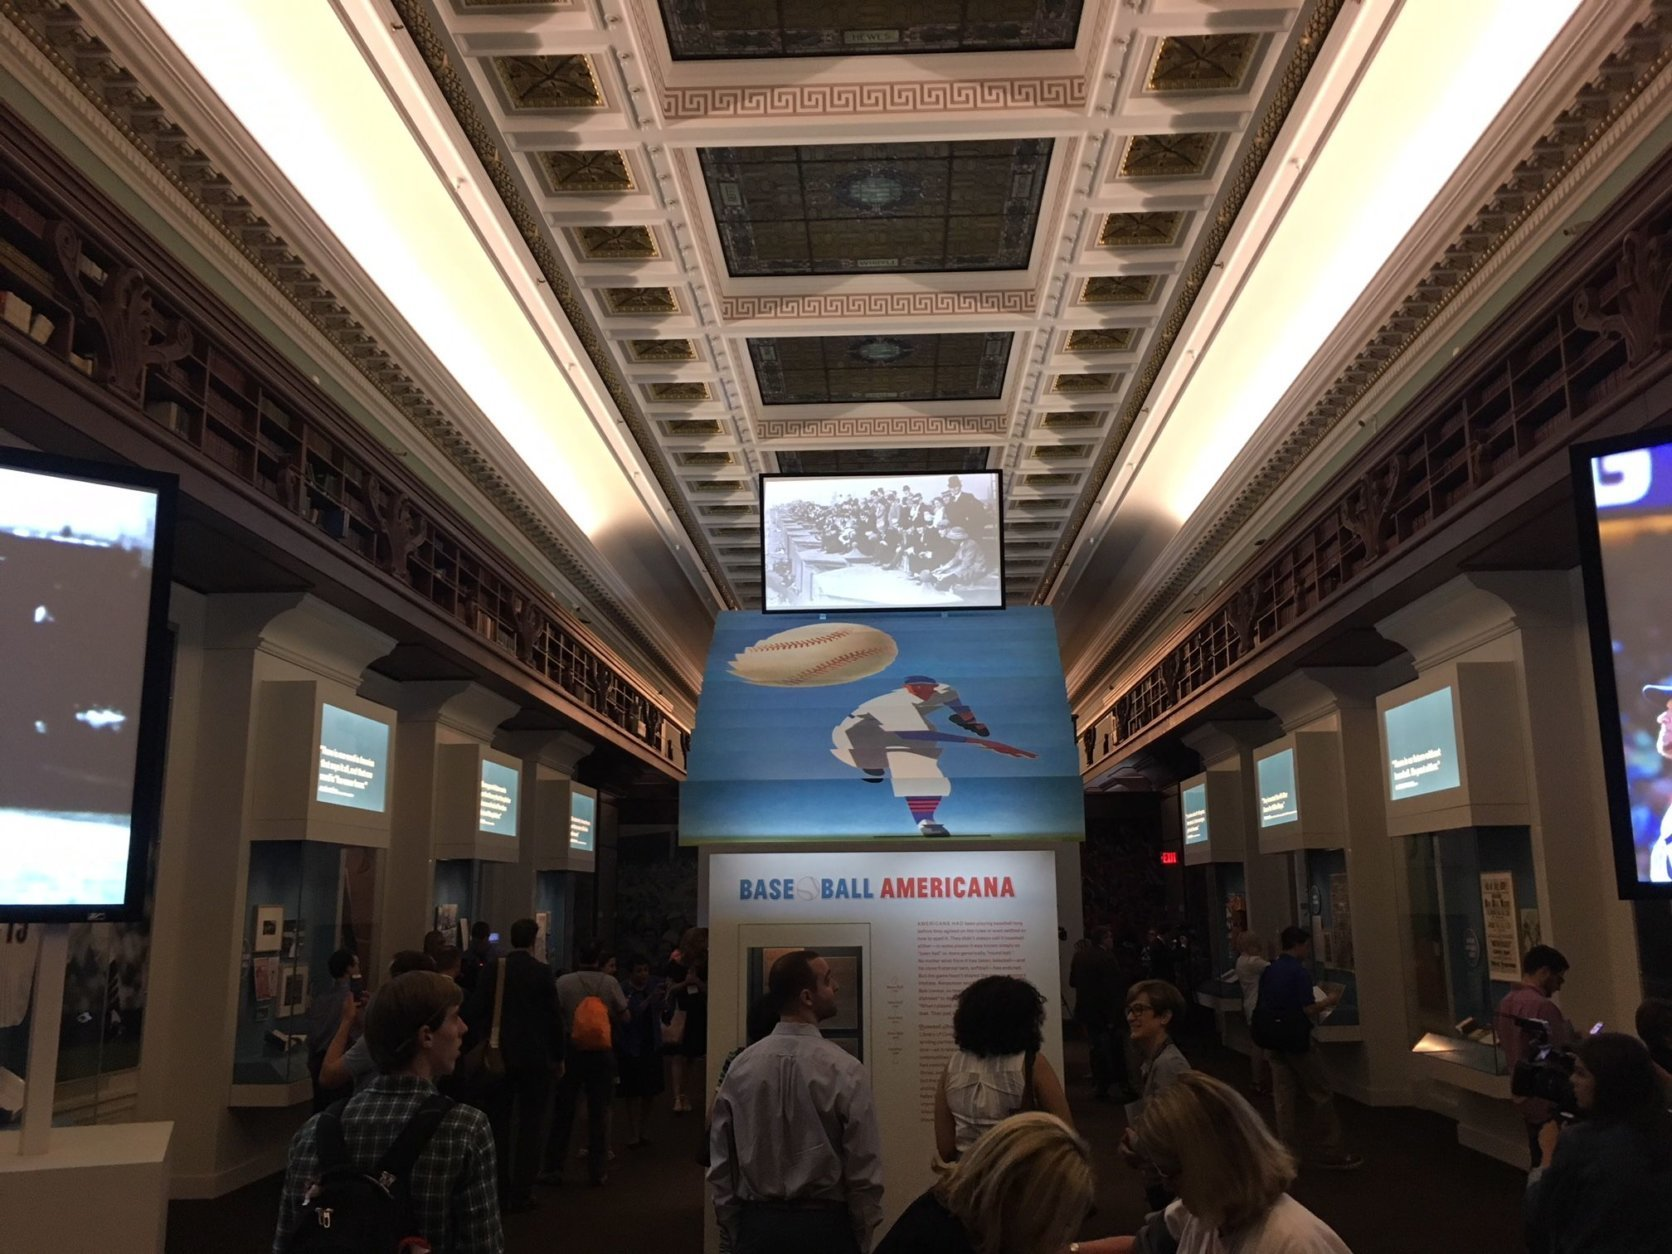 The exhibition also includes video archives provided by MLB. Docent-led public tours are available Wed.-Fri. at 11 a.m. and Saturdays at 1 p.m. beginning July 11. (WTOP/Noah Frank)